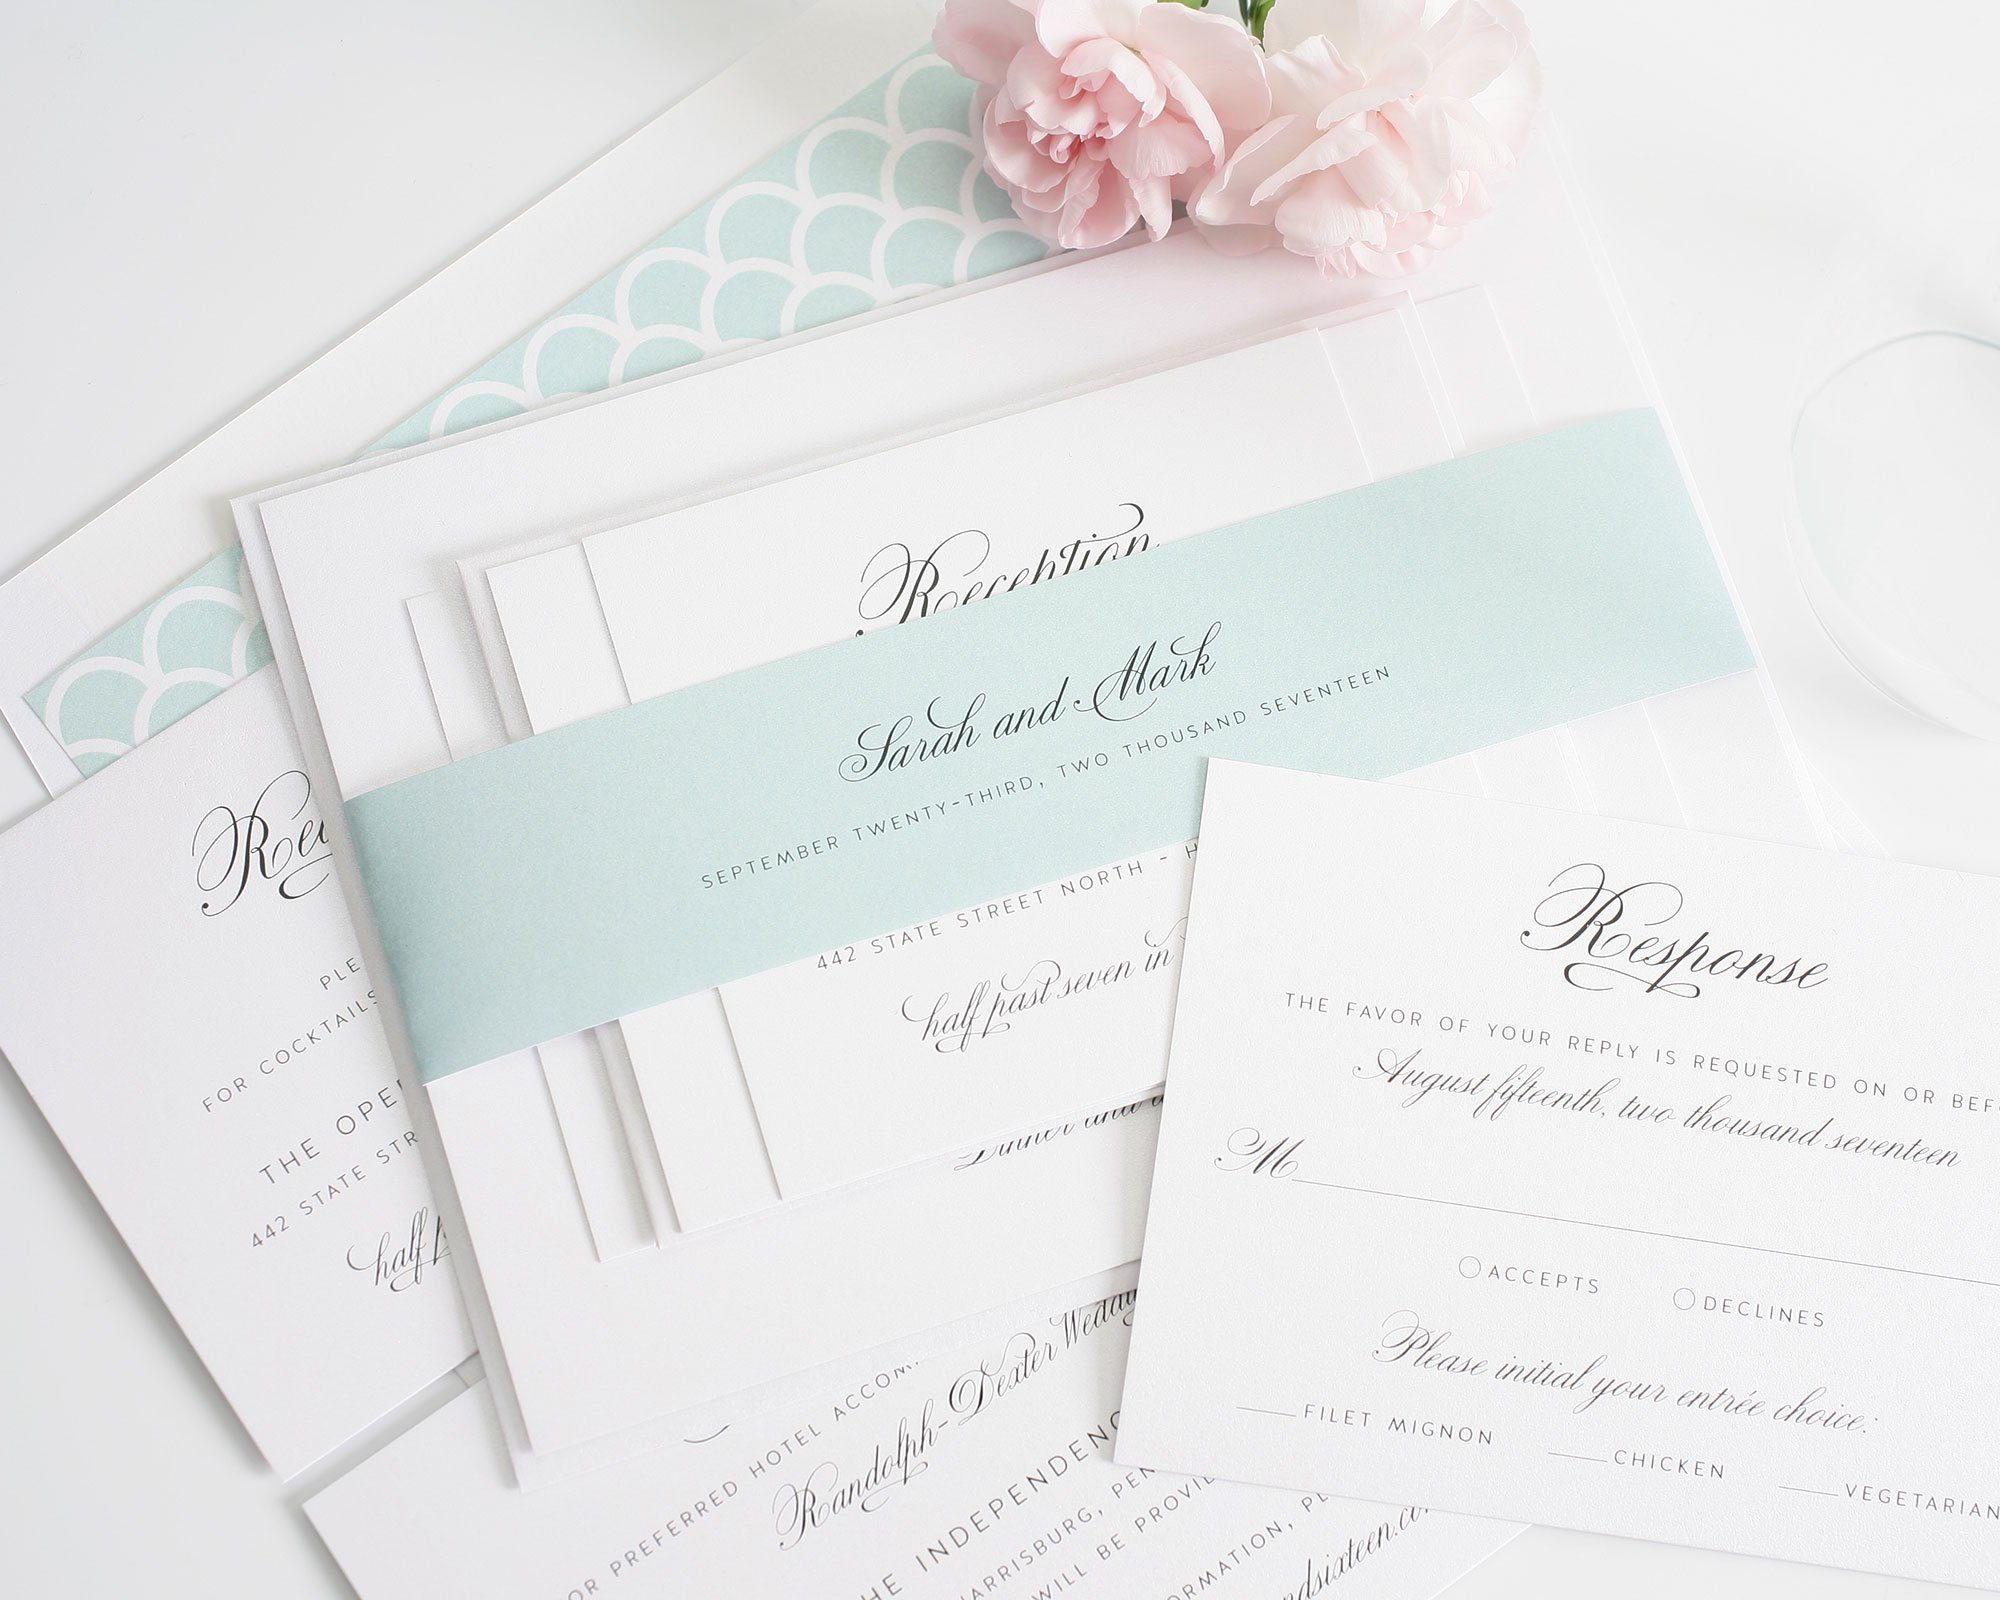 Gorgeous Wedding Invitations: Gorgeous Wedding Invitations With Mint Scallops